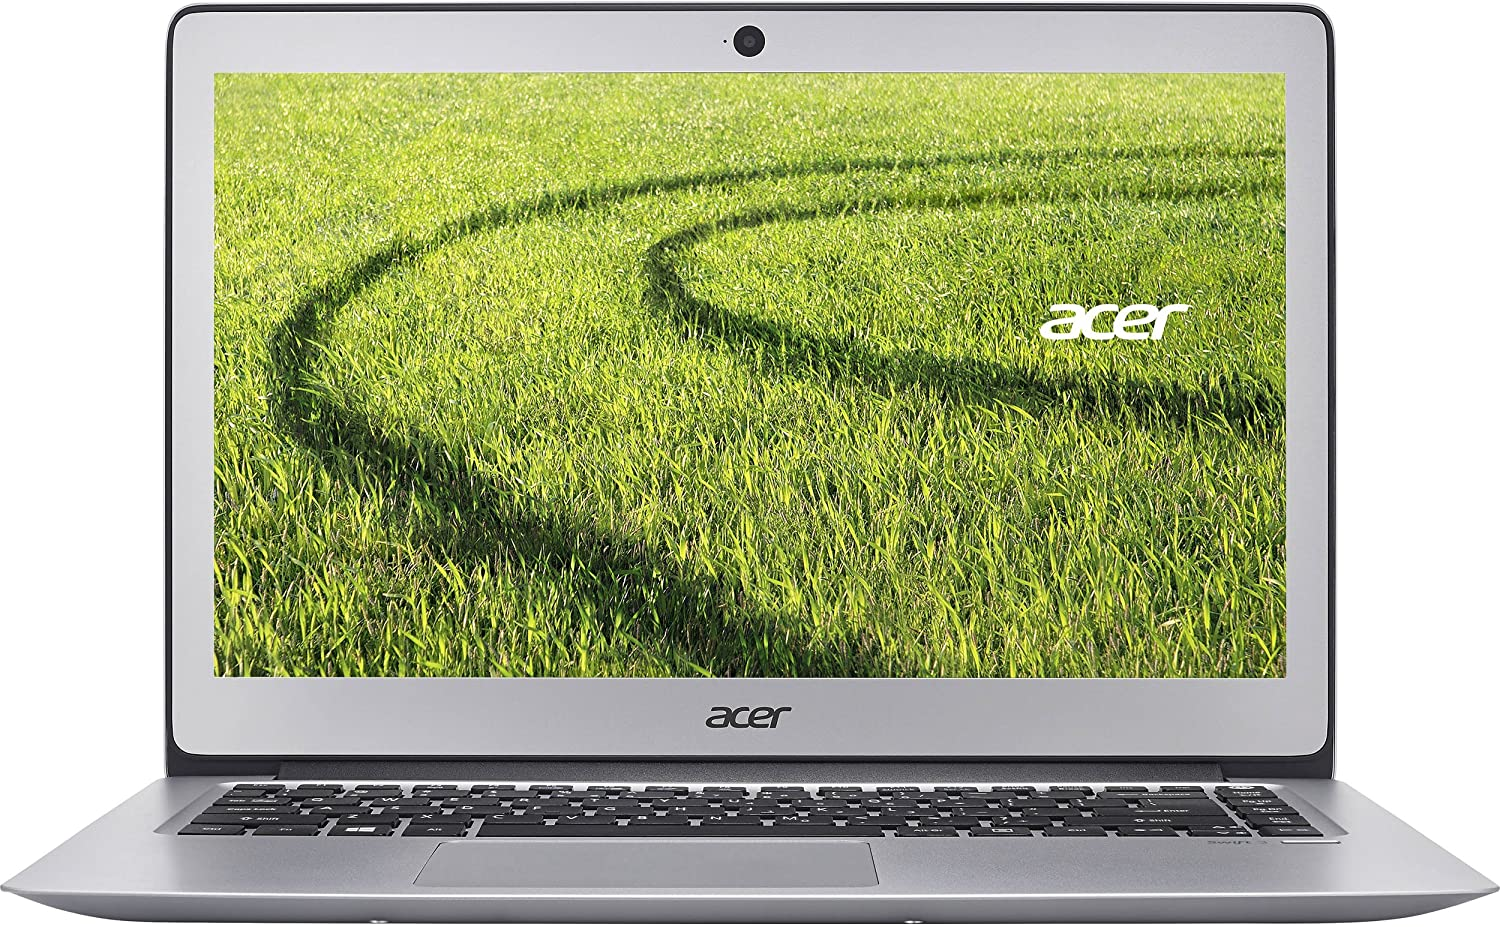 Acer Swift 3 SF314-52-517Z 14' Laptop Computer - Silver, Intel Core i5-8250U Processor 1.6GHz, 8GB DDR4 Onboard RAM, 256GB Solid State Drive, Microsoft Windows 10 (Renewed)